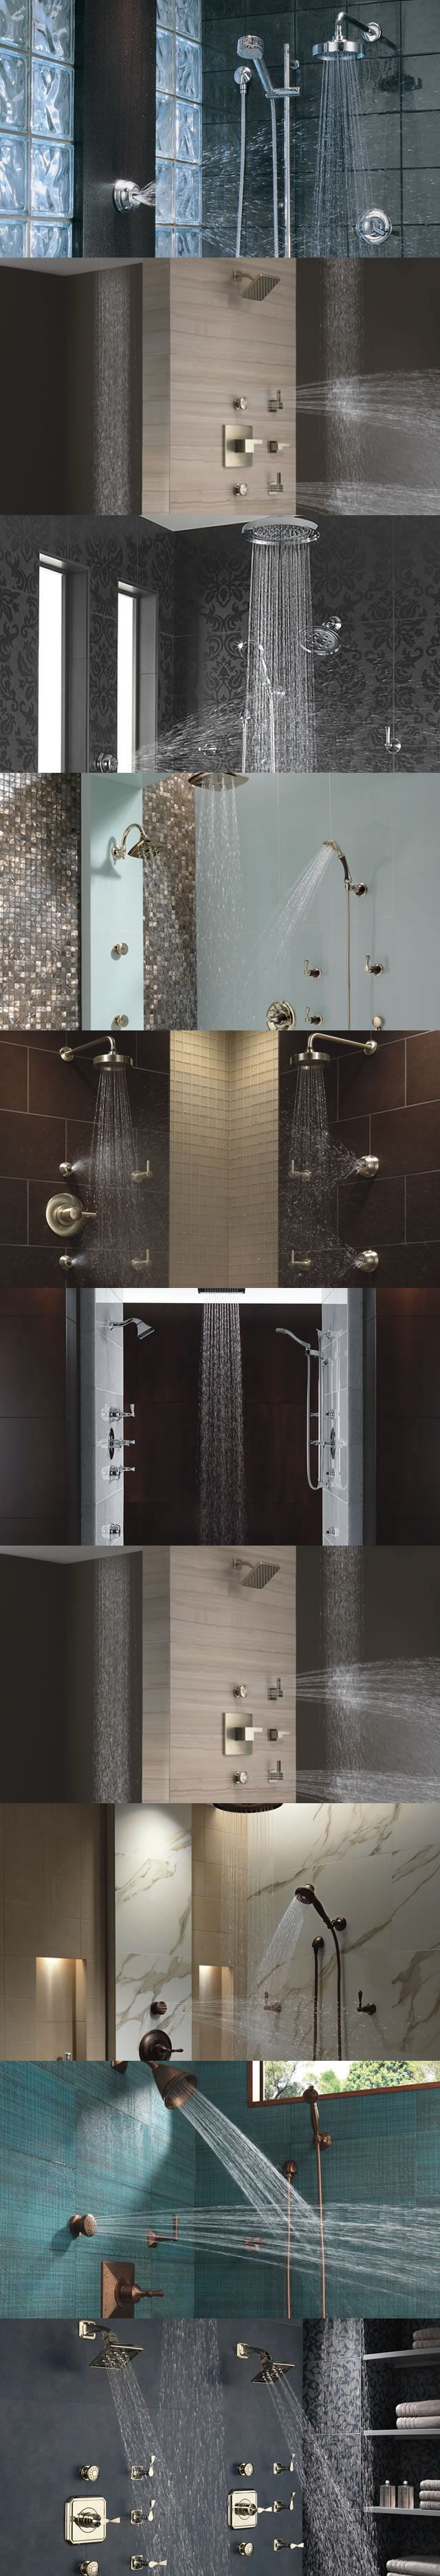 Brizo Shower Faucets shower system brings fashion-forward style and ...